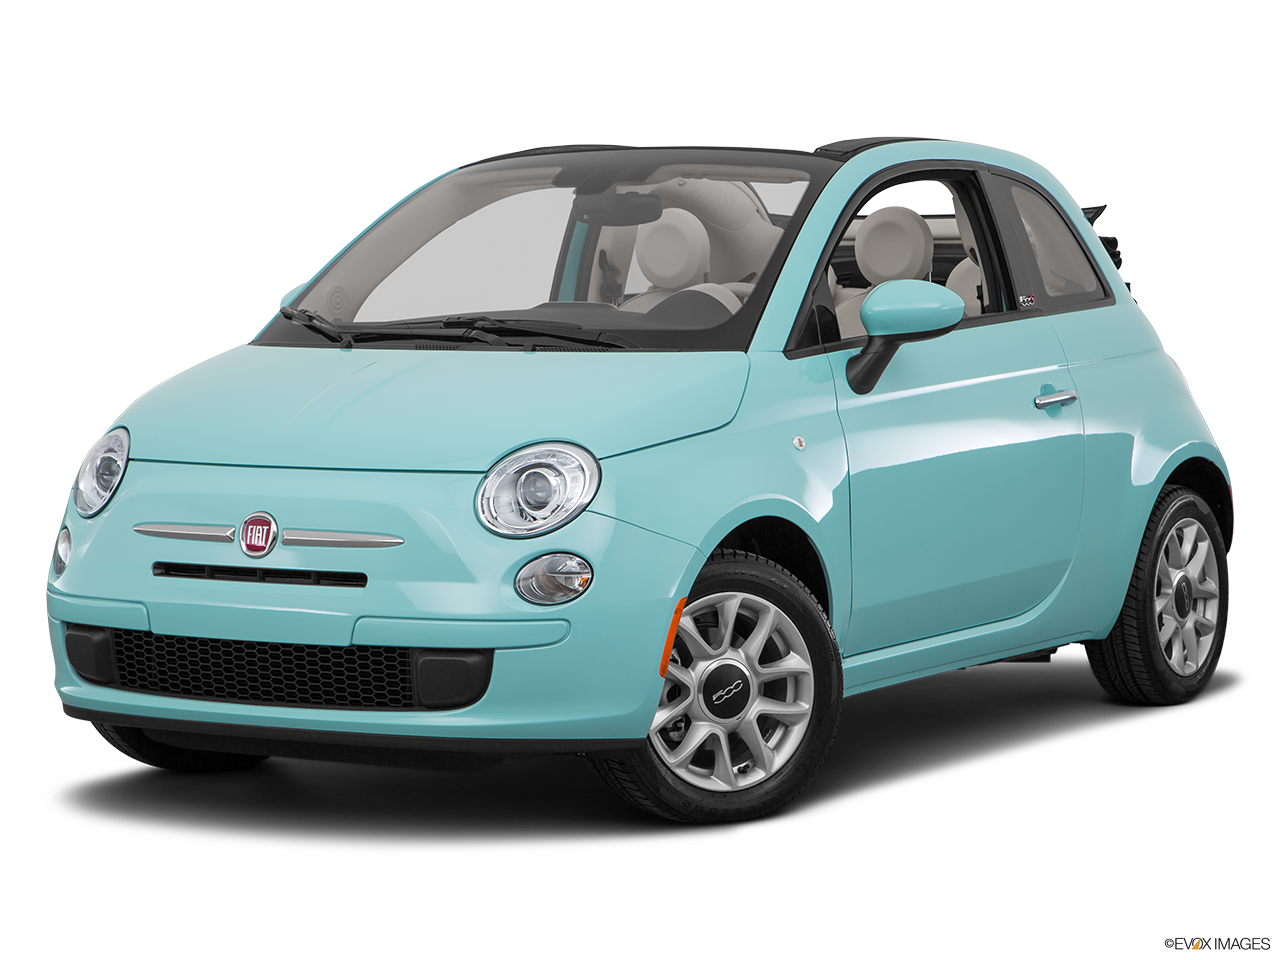 Test Drive A 2016 Fiat 500C at Arrigo FIAT Sawgrass in Tamarac